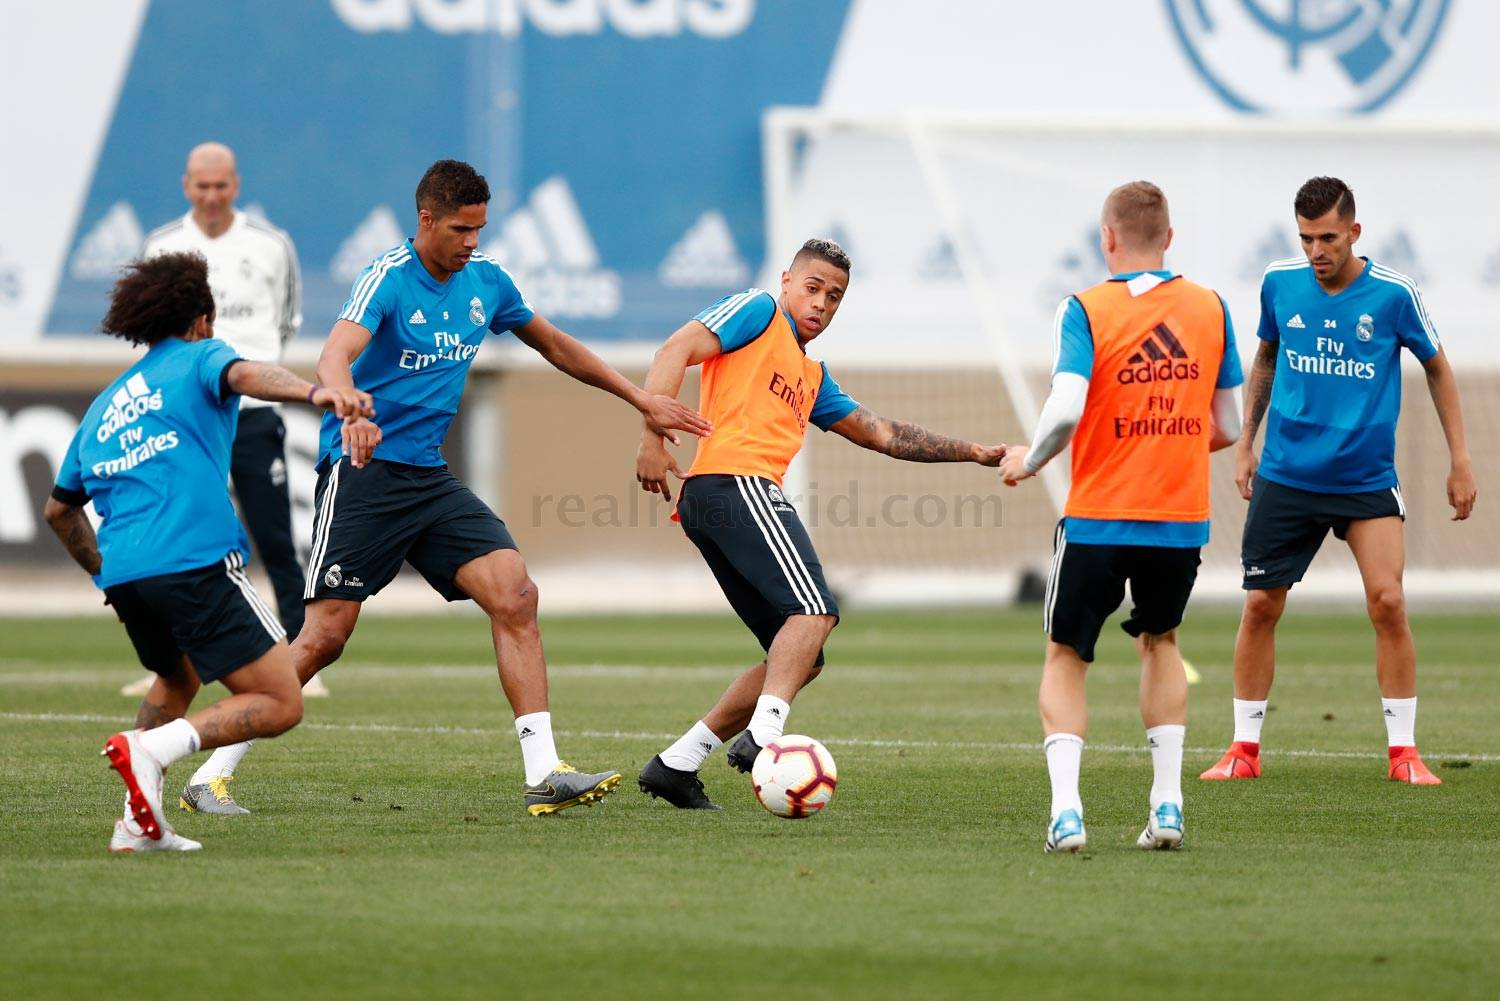 Real Madrid - Entrenamiento del Real Madrid - 01-05-2019